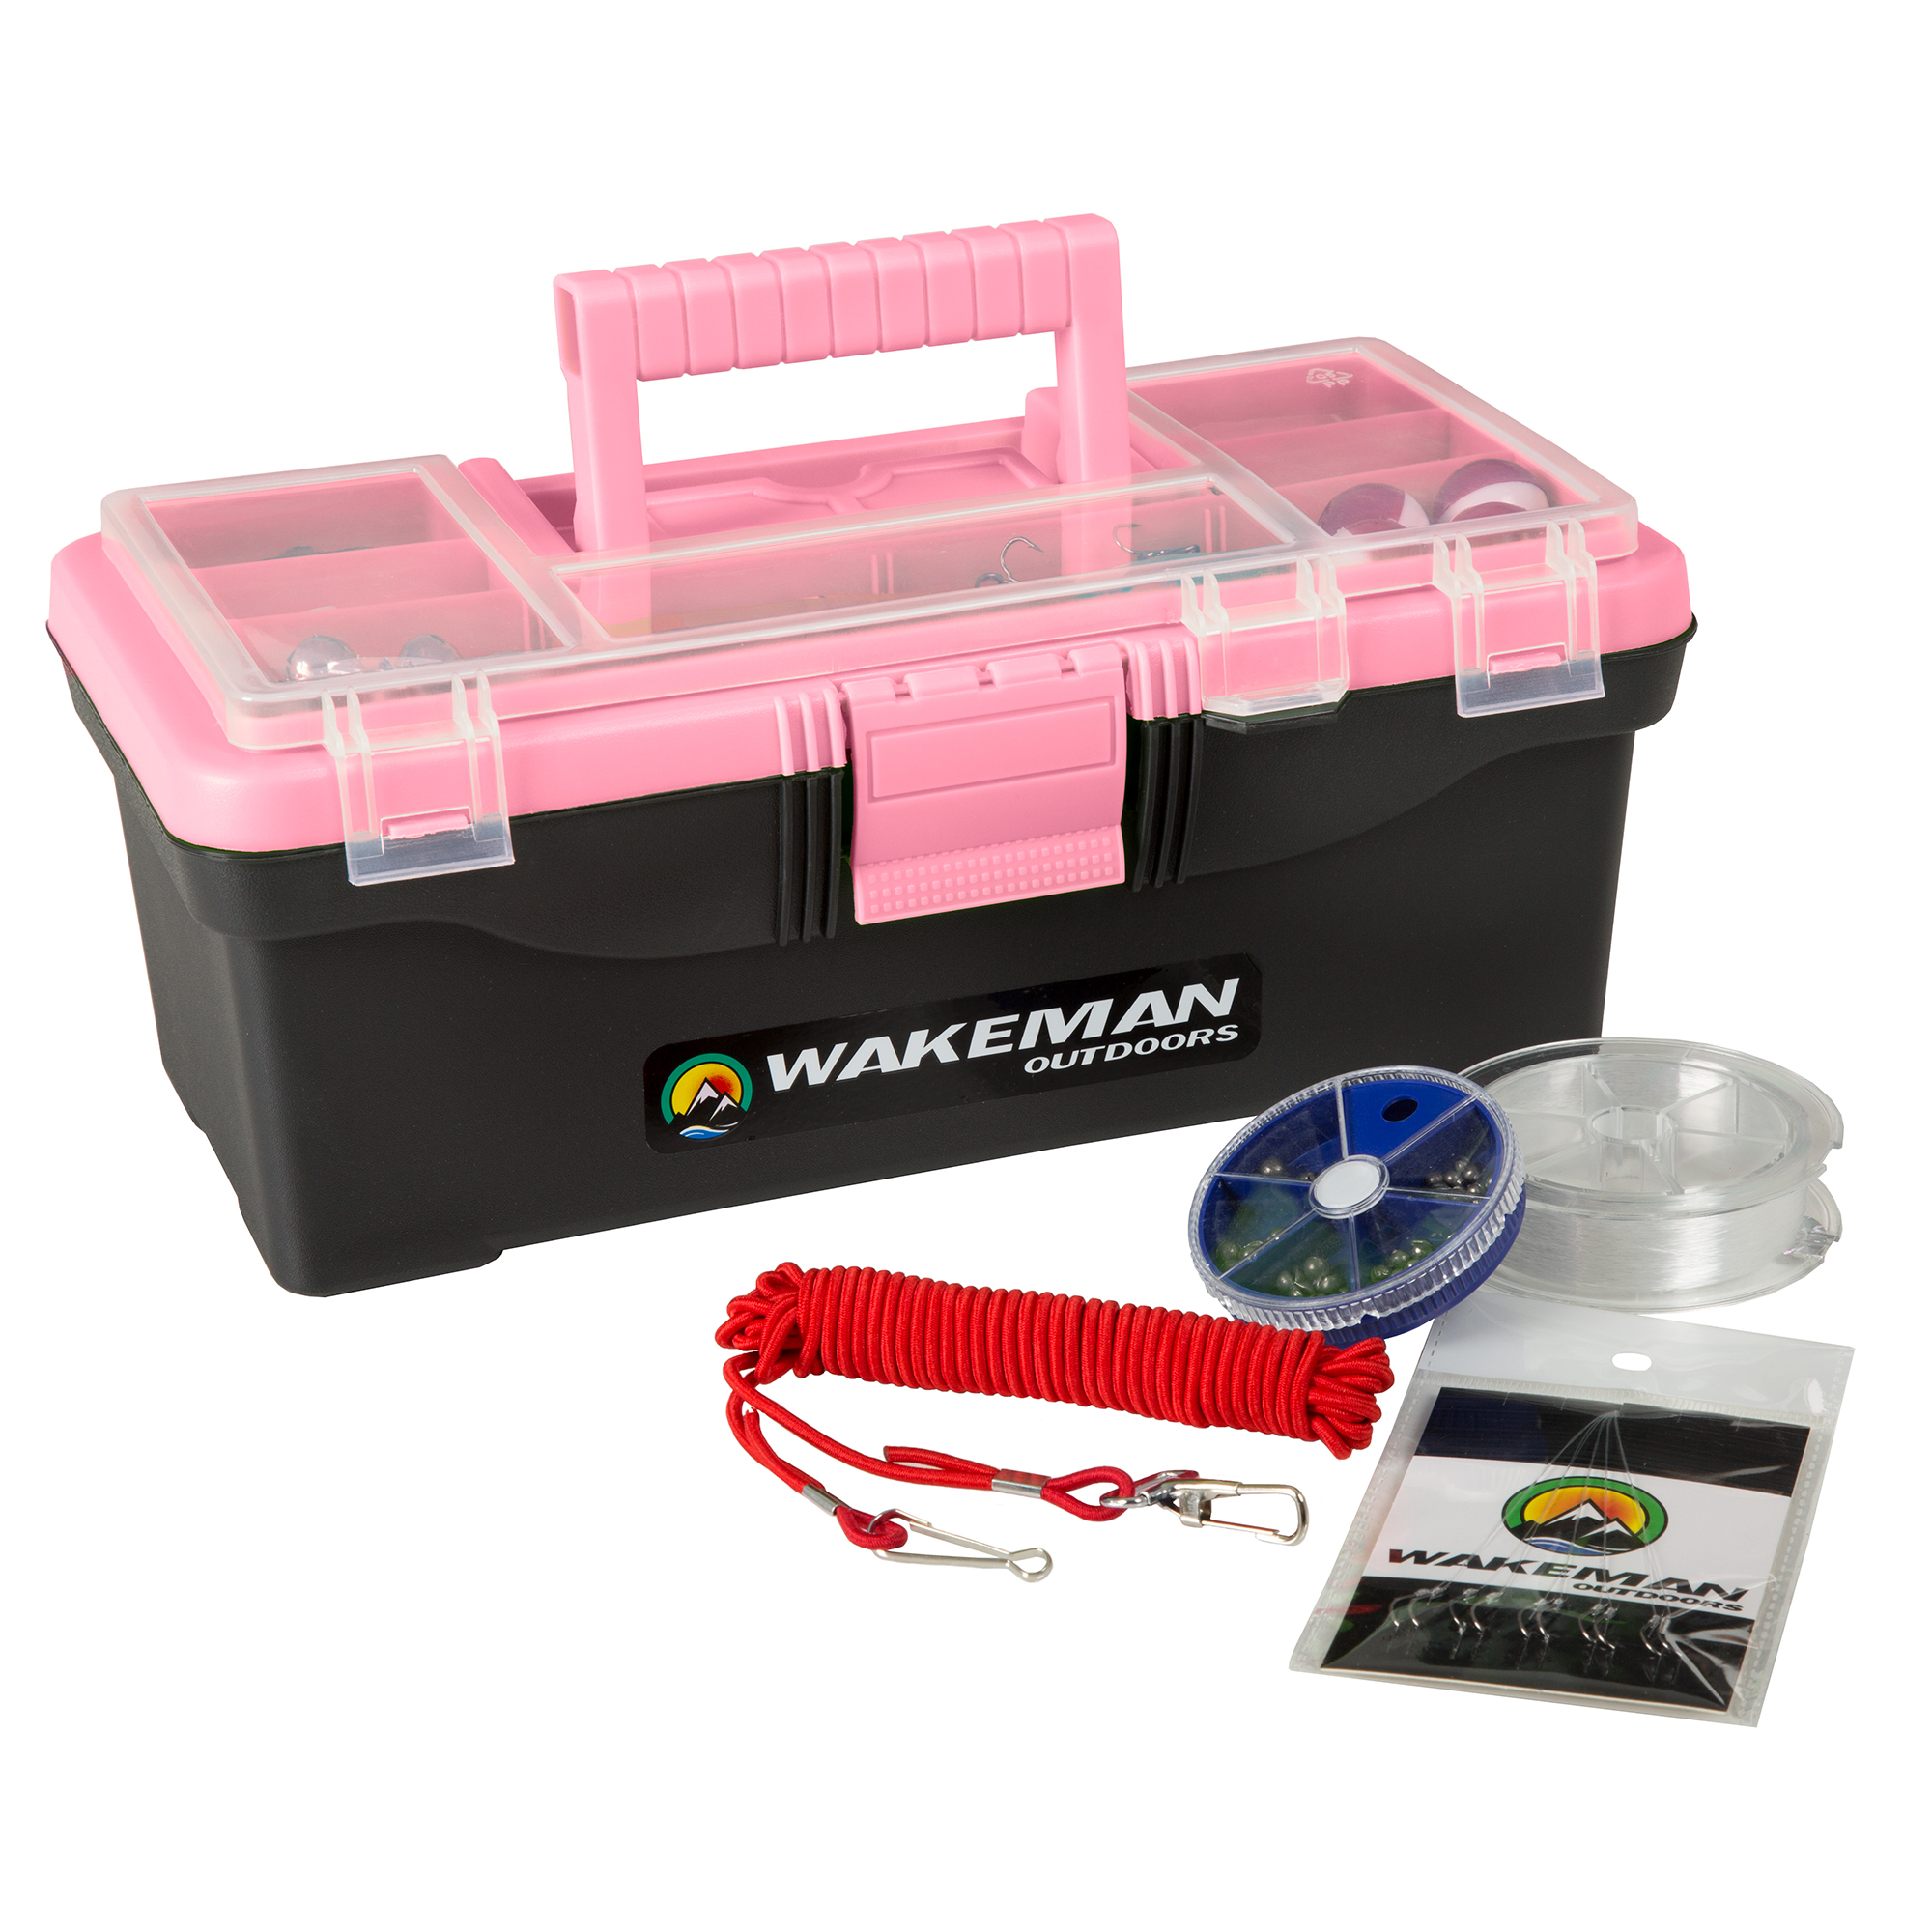 Fishing Single Tray Tackle Box- 55 Piece Tackle Gear Kit Includes Sinkers, Hooks Lures Bobbers Swivels and Fishing Line By Wakeman Outdoors... by Trademark Global